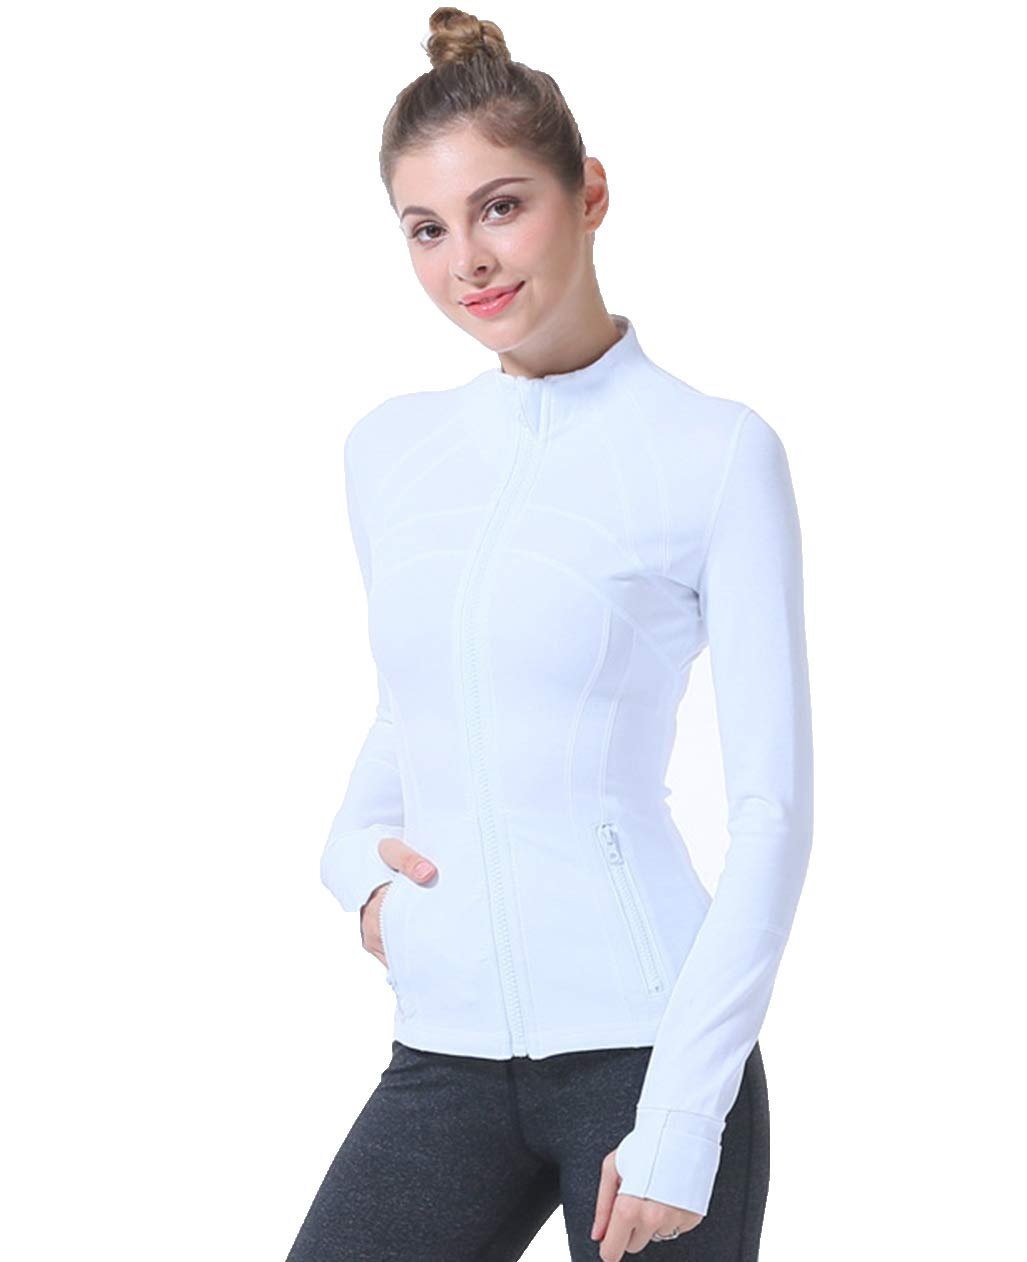 UDIY Women's Sports Jackets Stretchy Workout Yoga Jackets with Thumb Holes White by UDIY